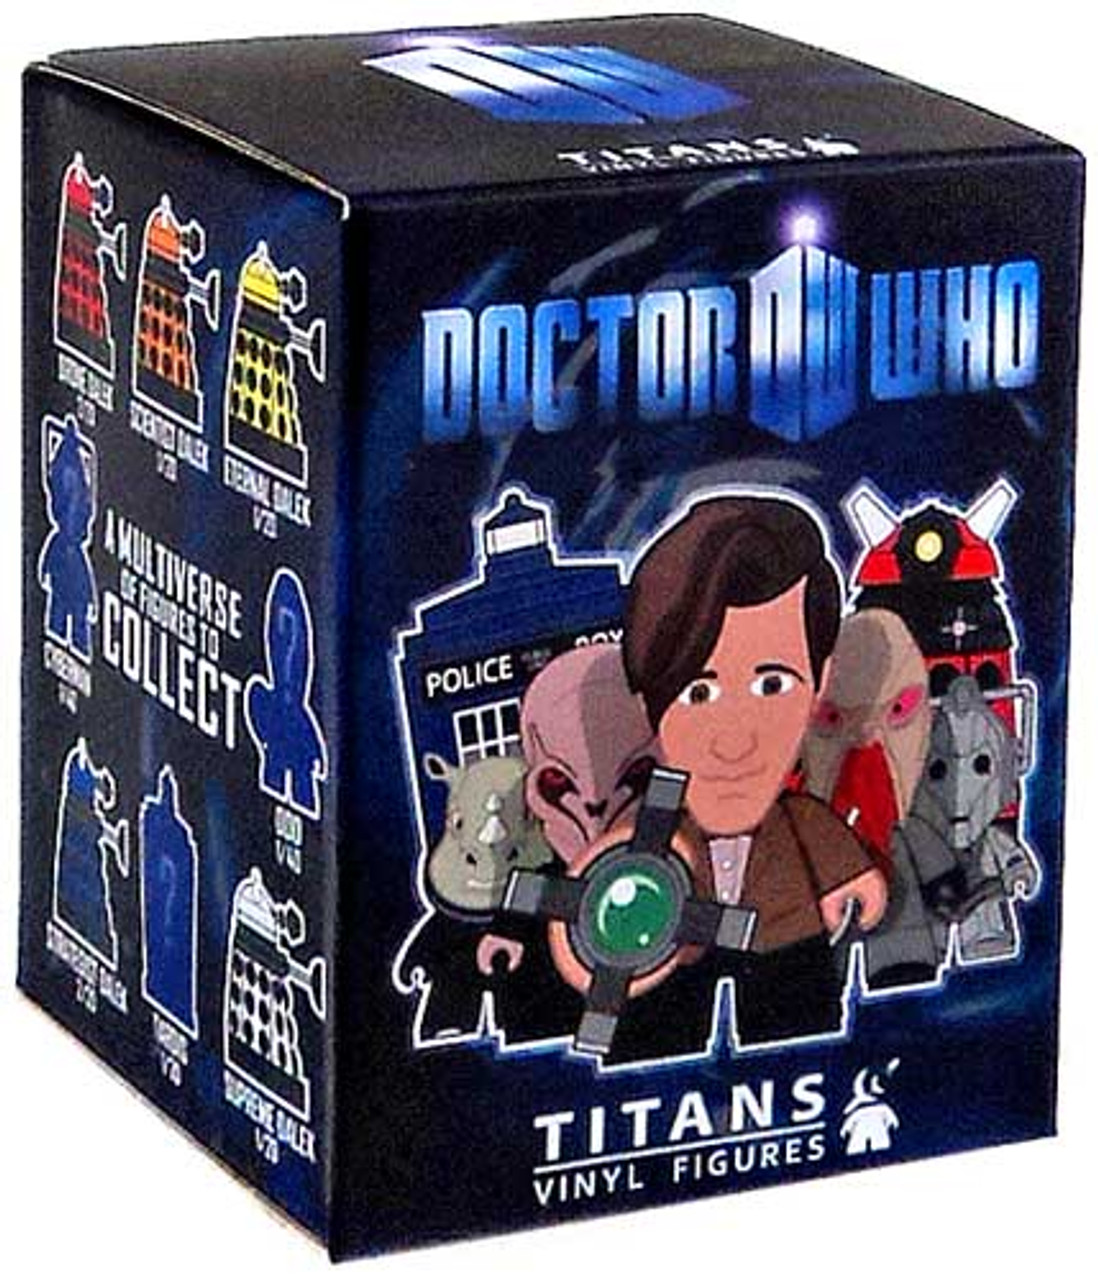 Doctor Who Series 1 Vinyl Mini Figure Mystery Pack